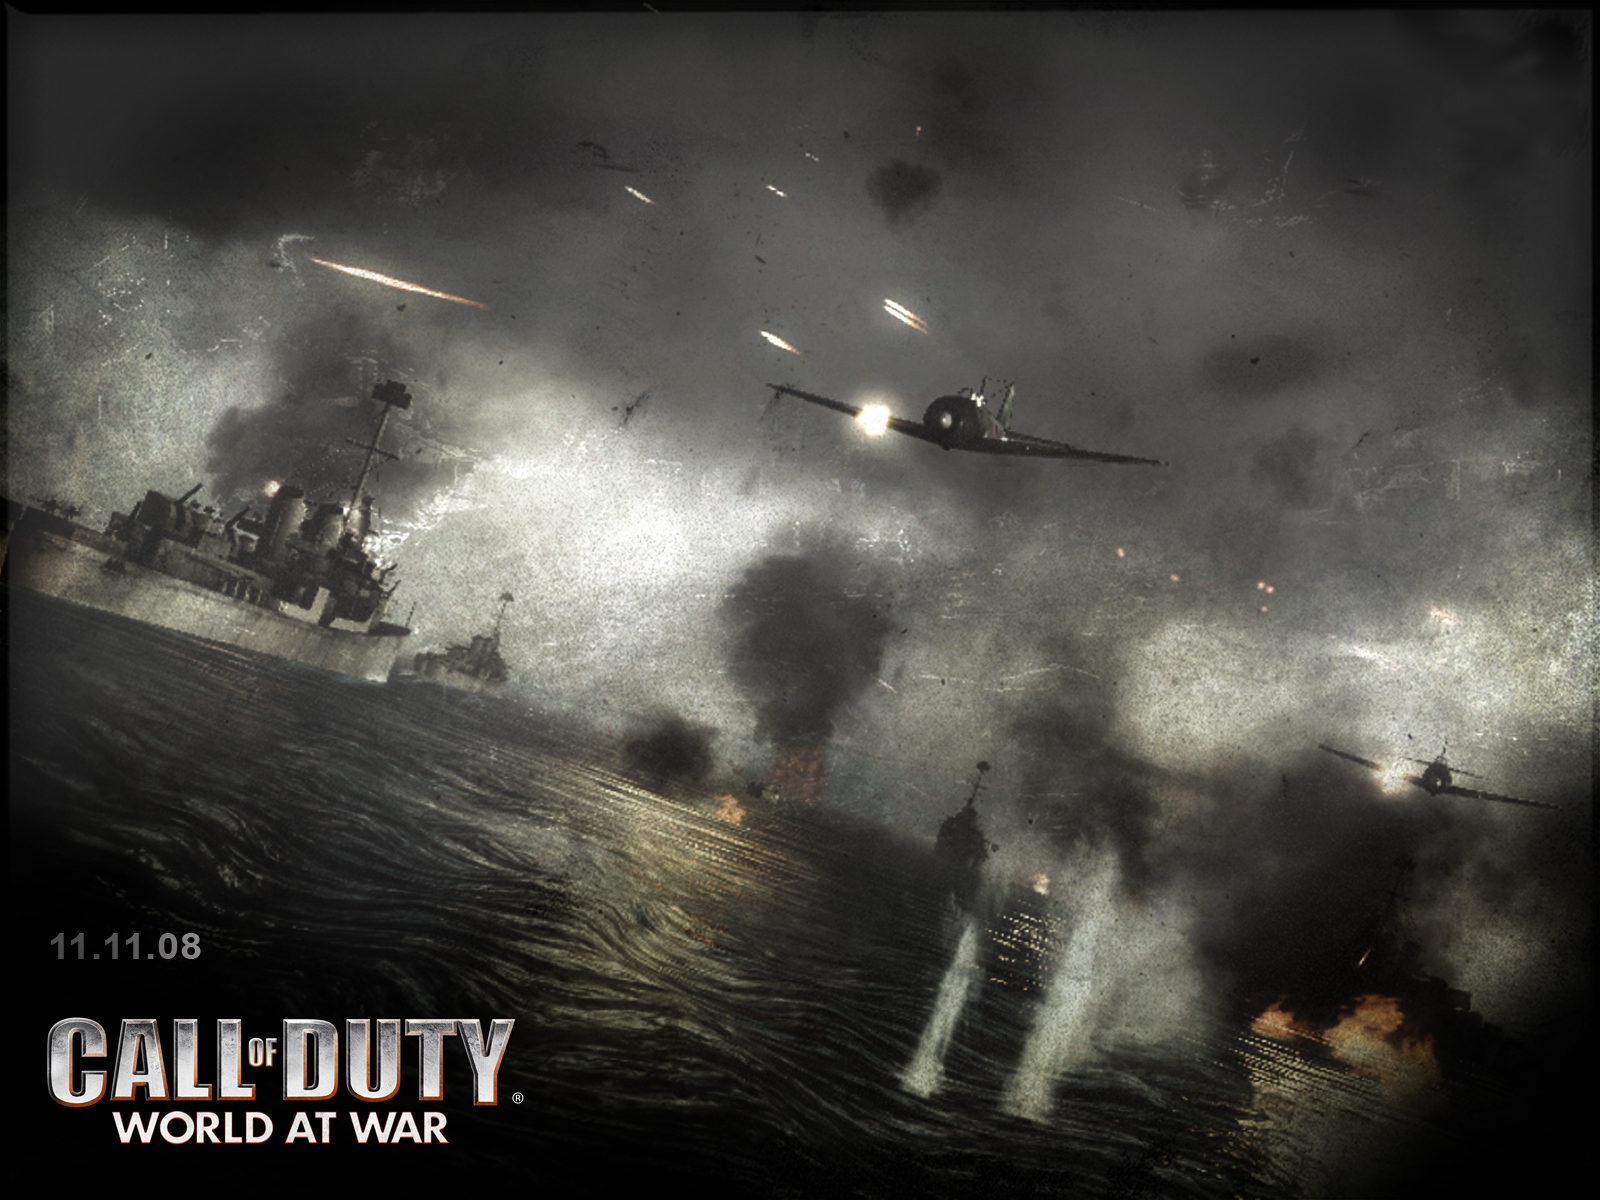 call of duty 1 wallpaper - photo #30